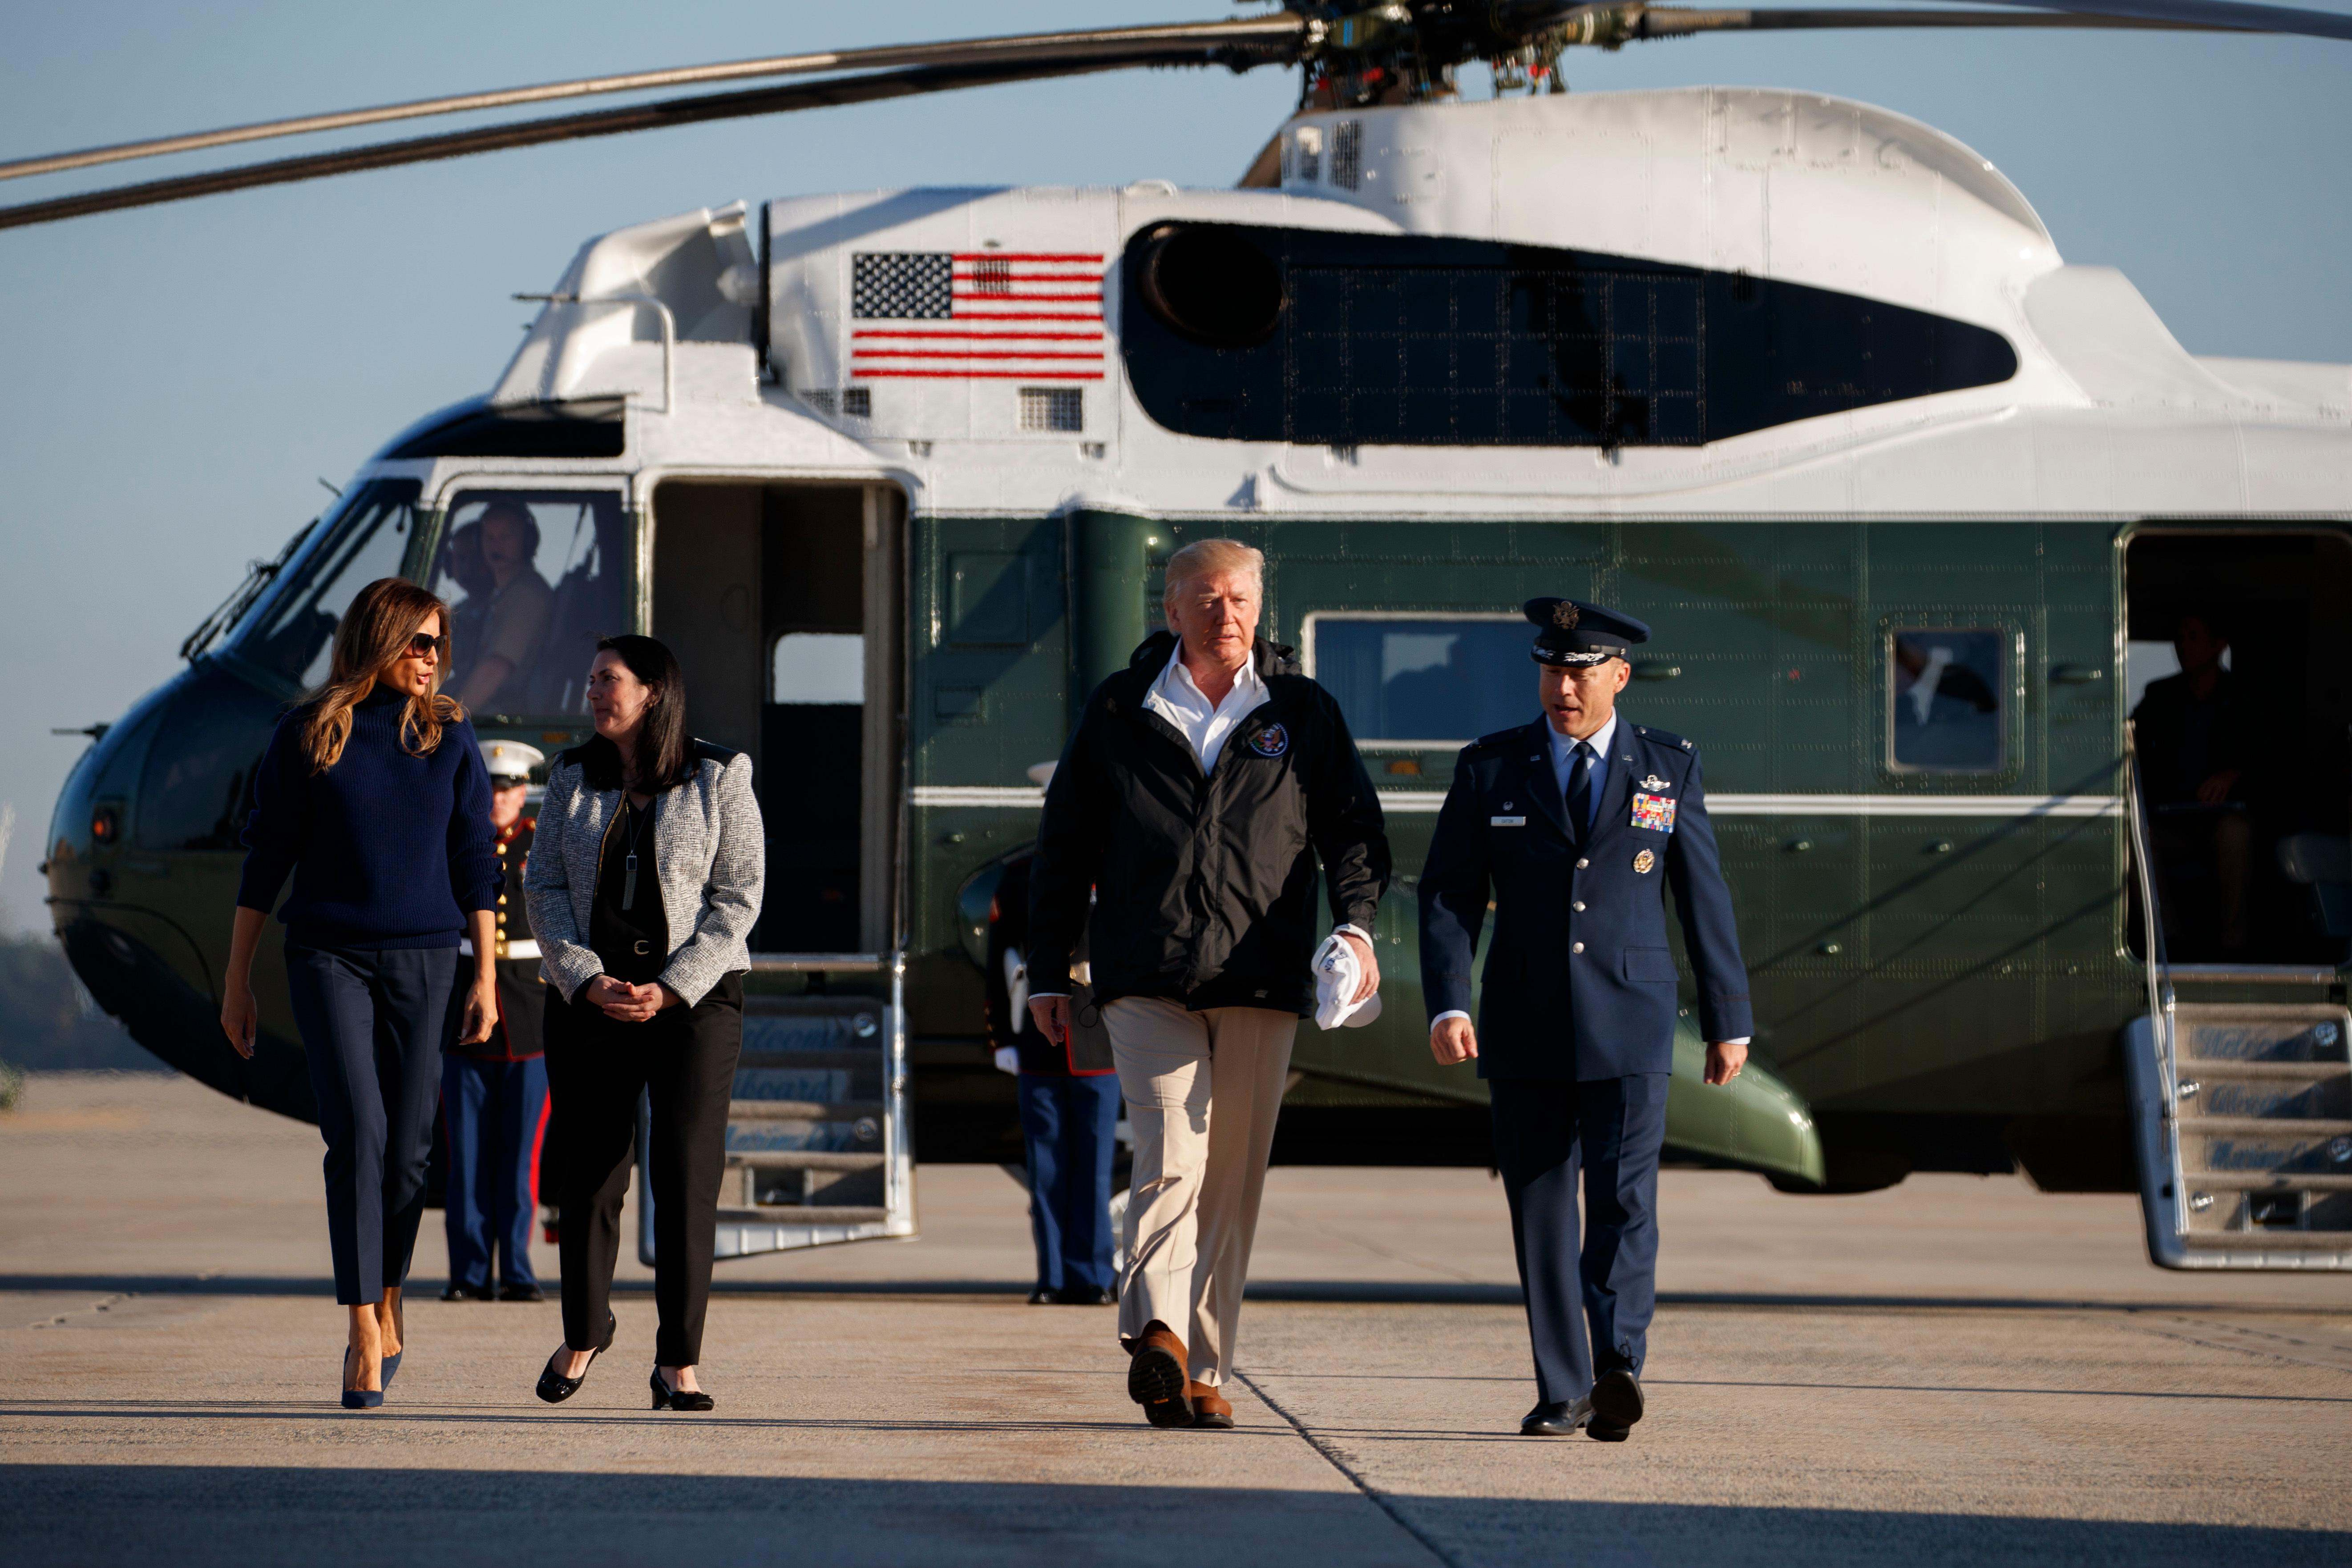 President Donald Trump and first lady Melania Trump walk to board Air Force One for a trip to Puerto Rico to survey hurricane damage and recovery efforts, Tuesday, Oct. 3, 2017, in Andrews Air Force Base, Md. (AP Photo/Evan Vucci)